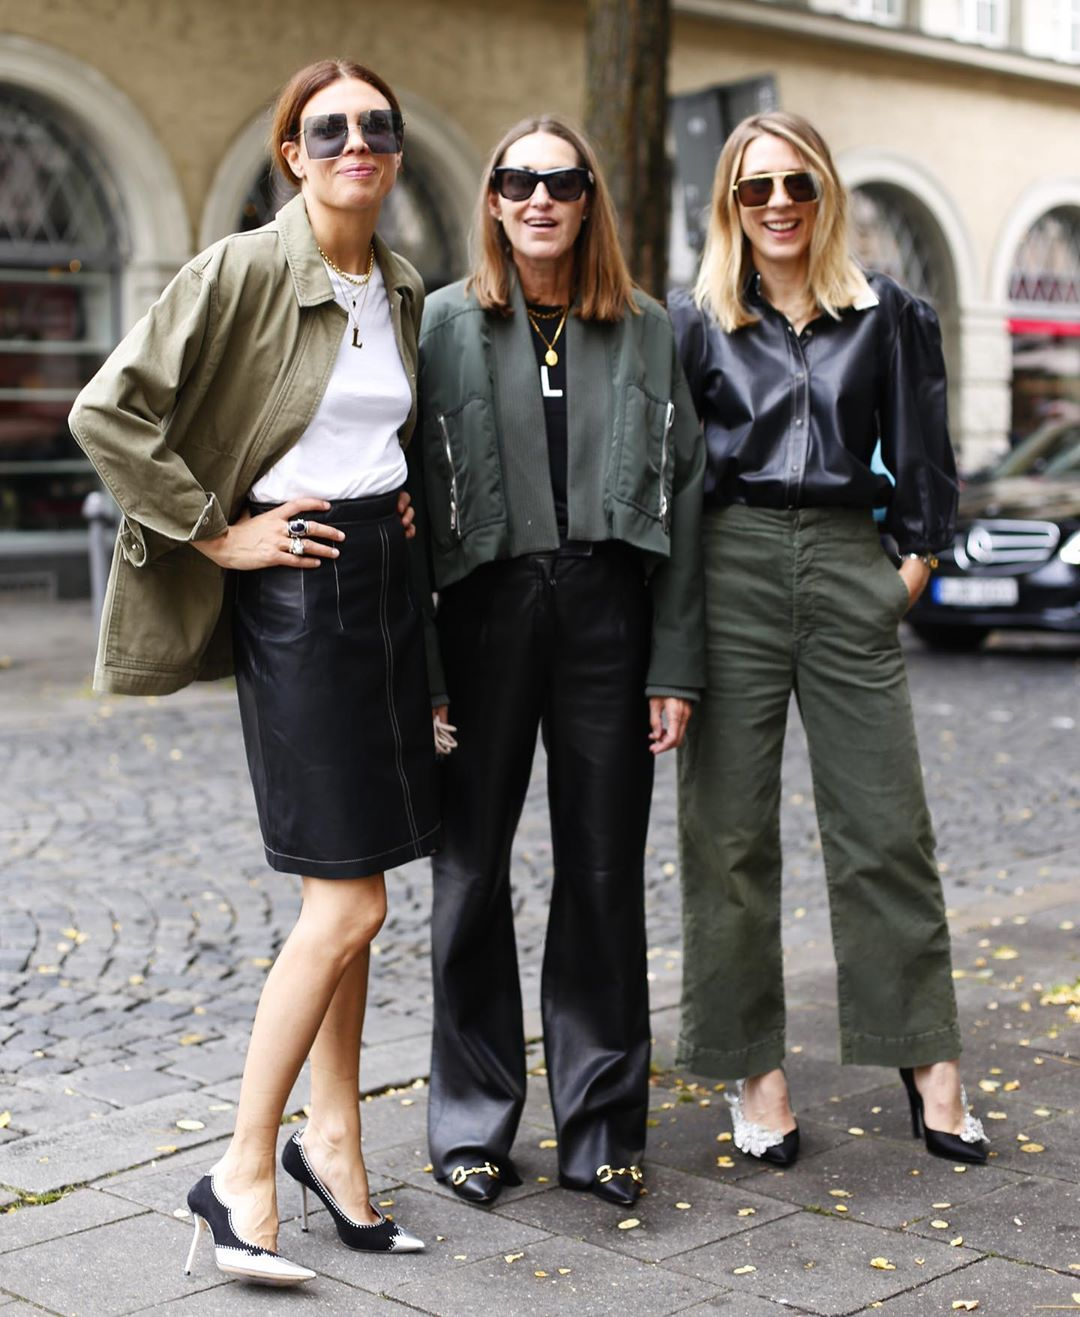 Olive Green is the Perfect Transitional Color for Summer to Fall